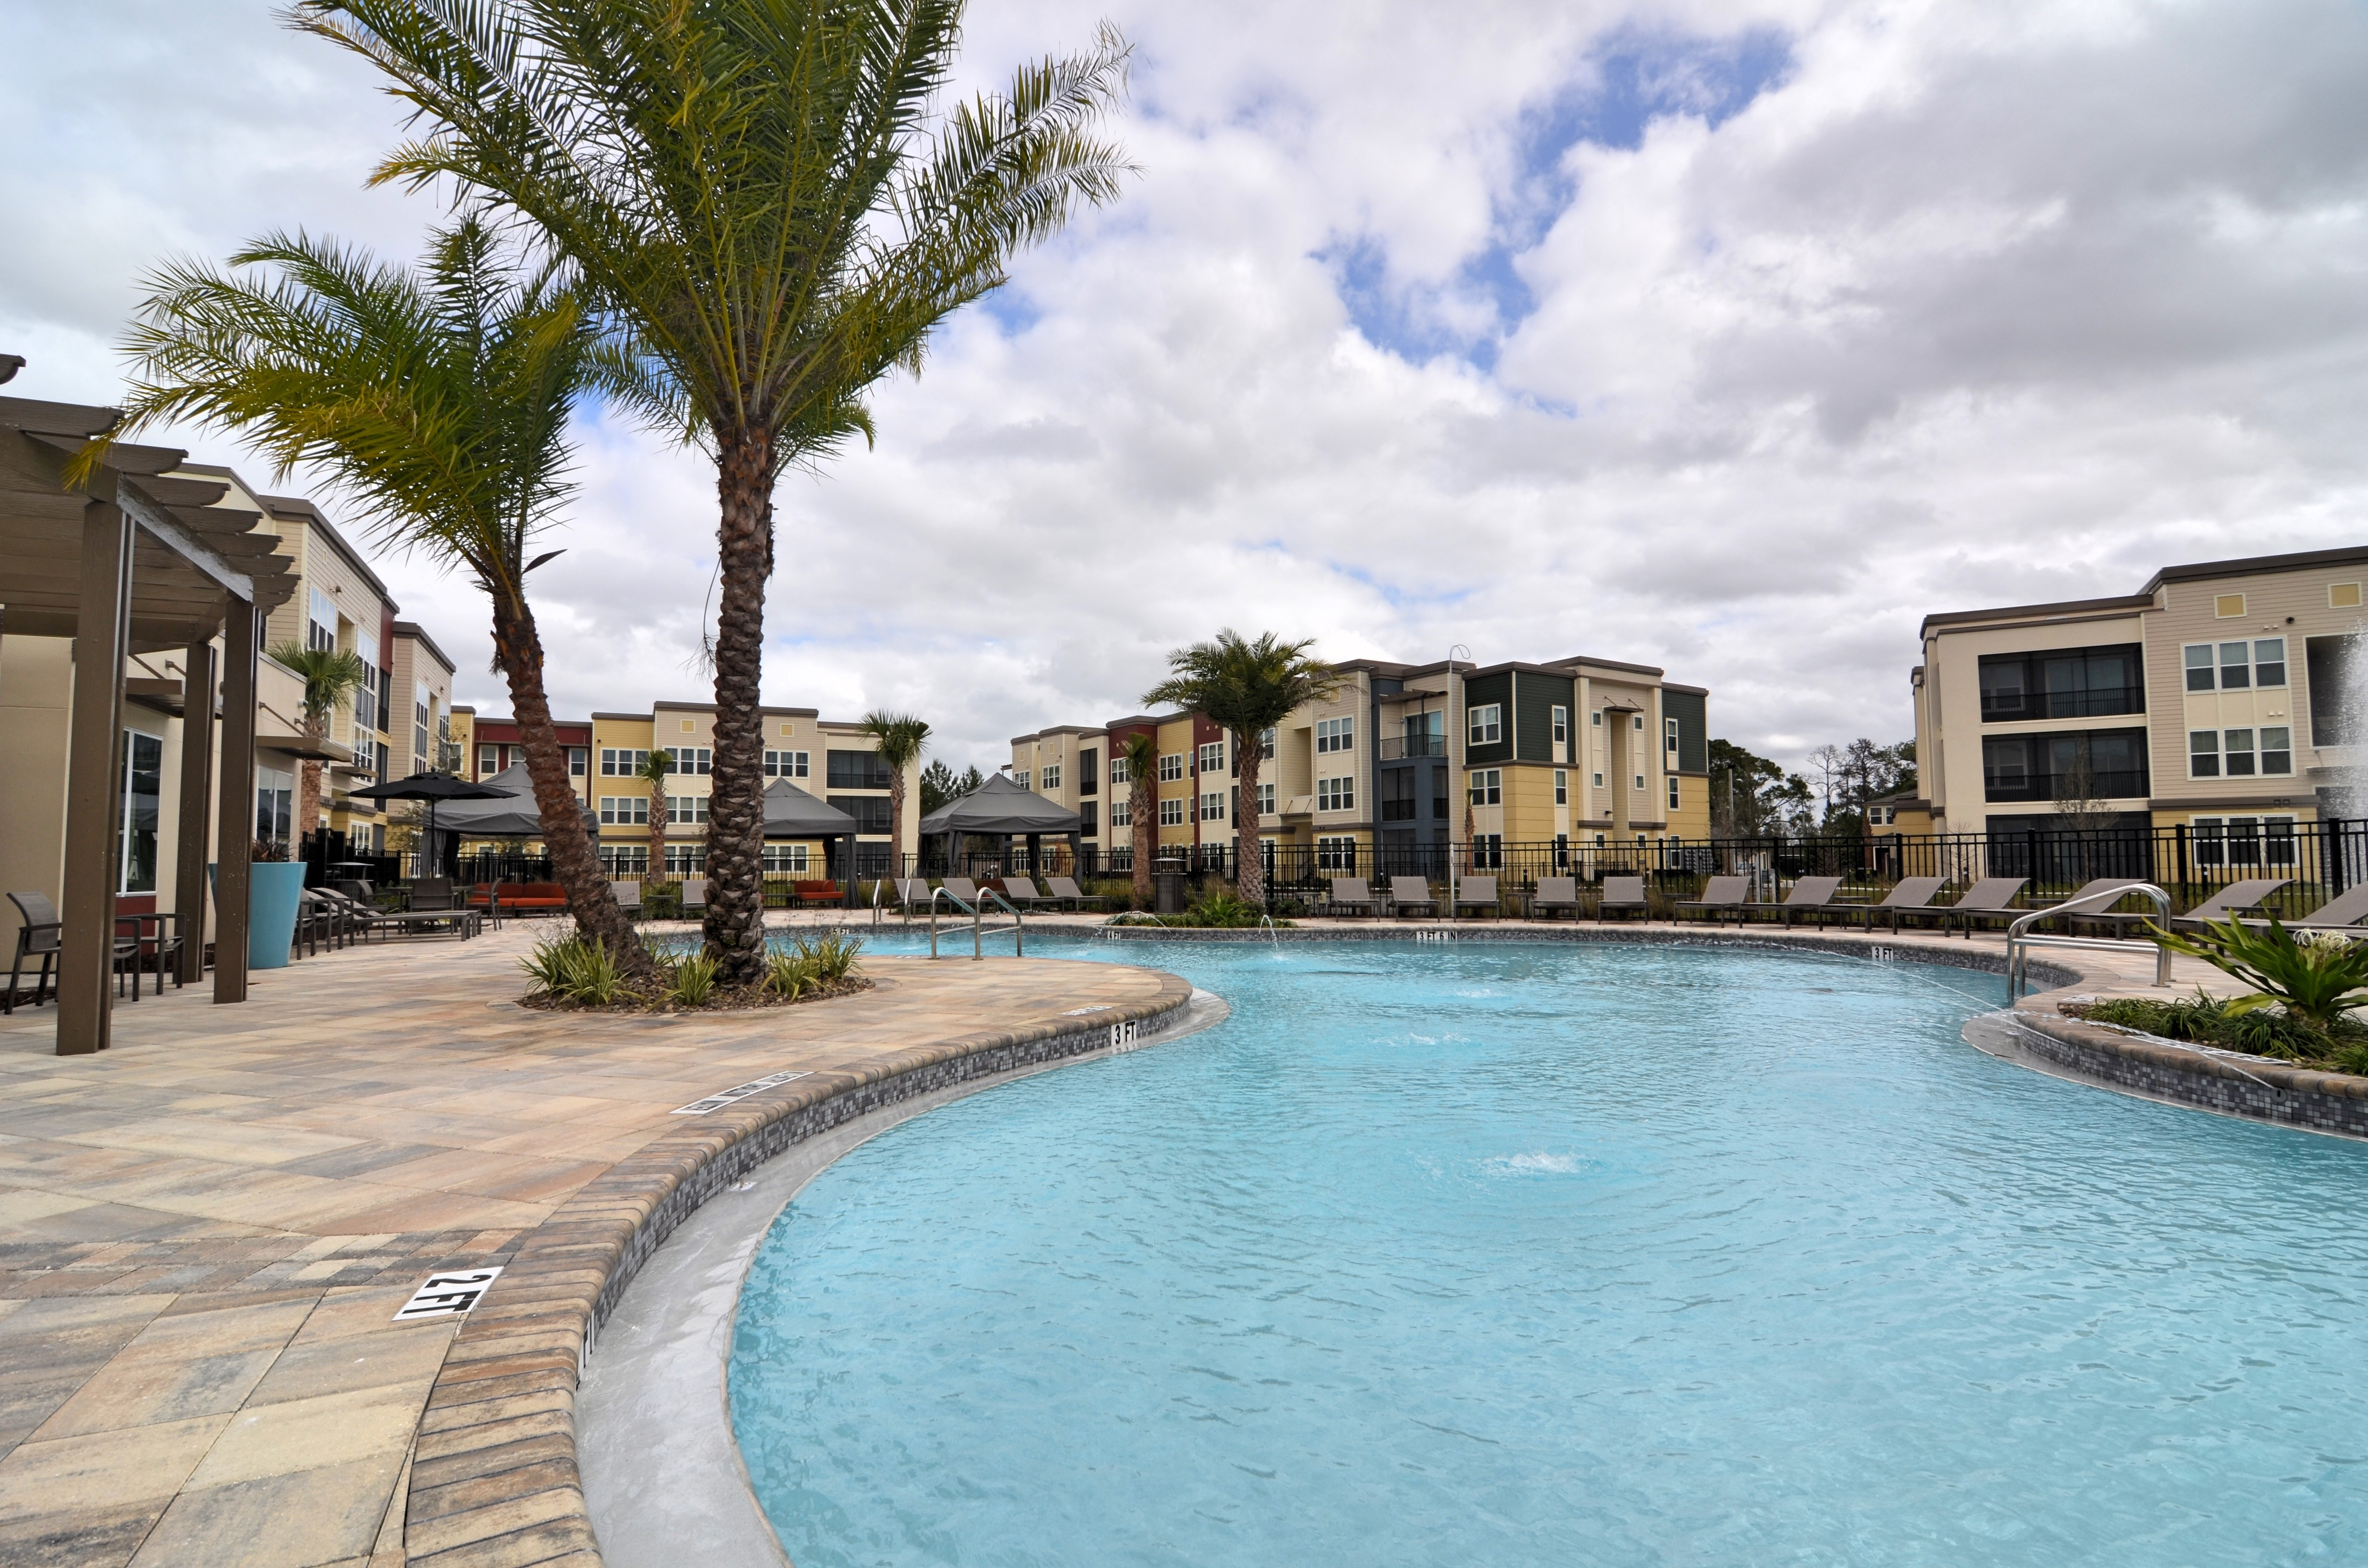 Dwell Nona Place Apartments for Rent Dwell Ct Orlando FL